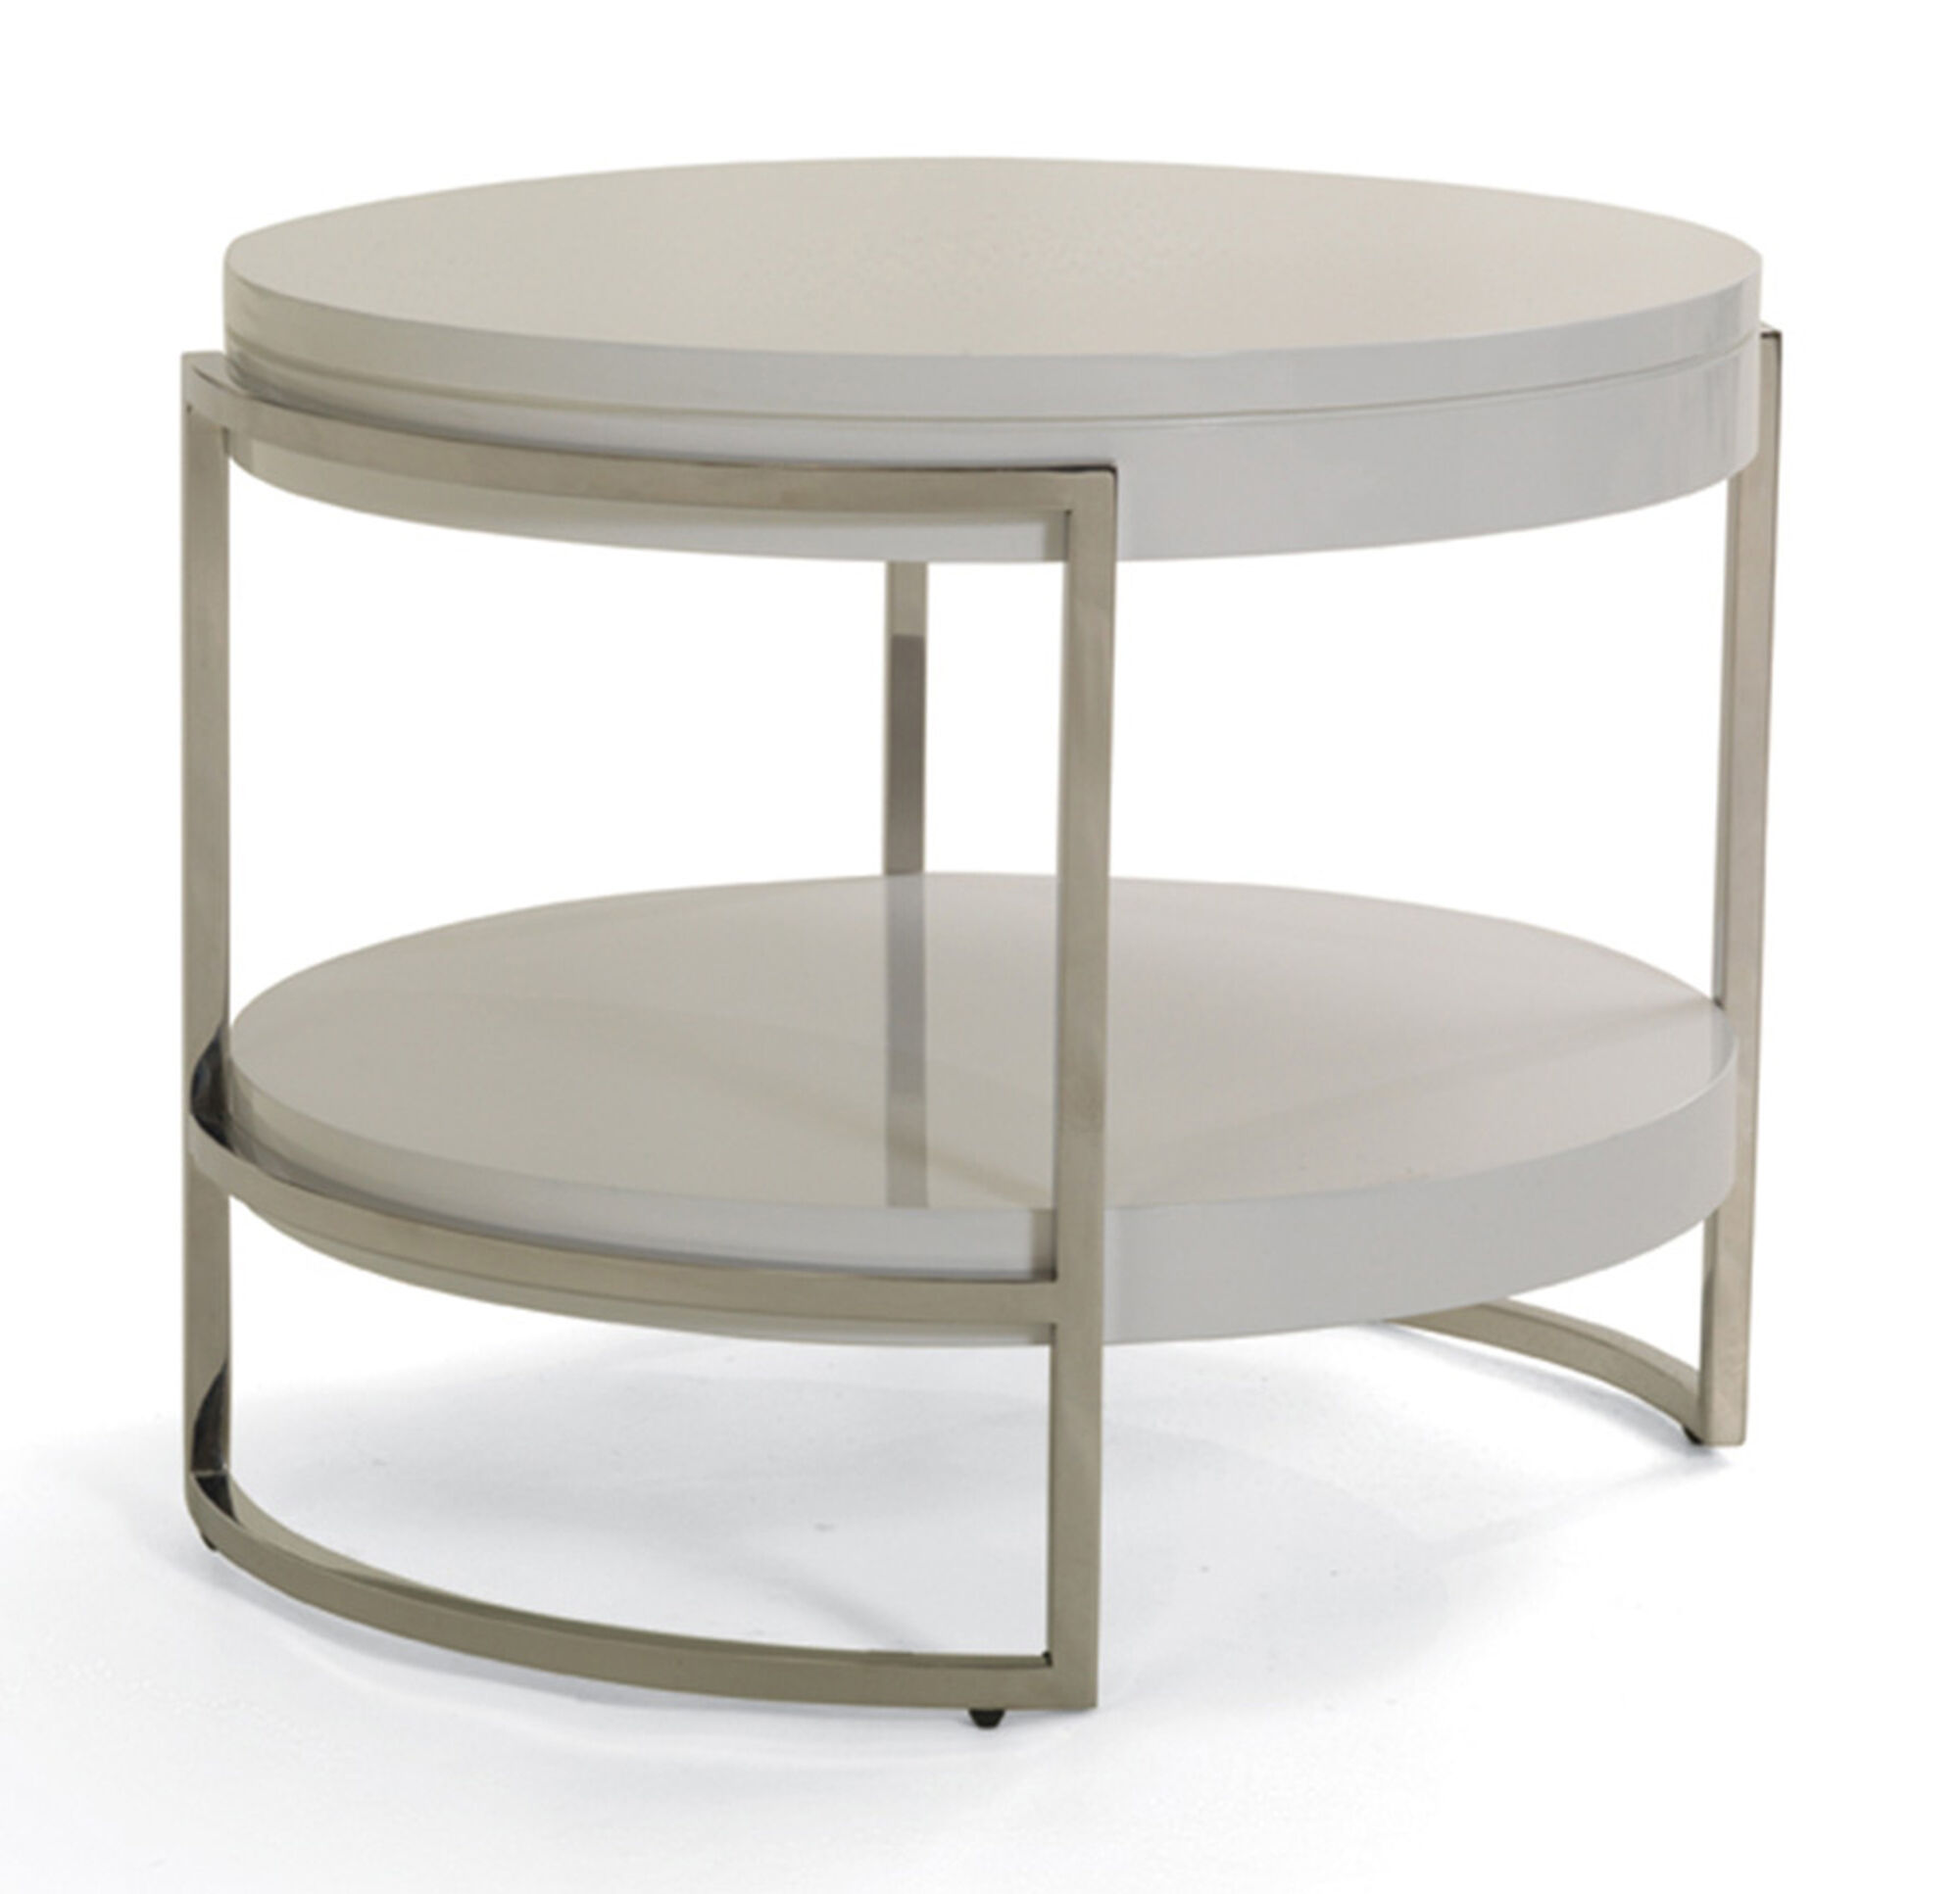 Round side tables - Round Side Tables